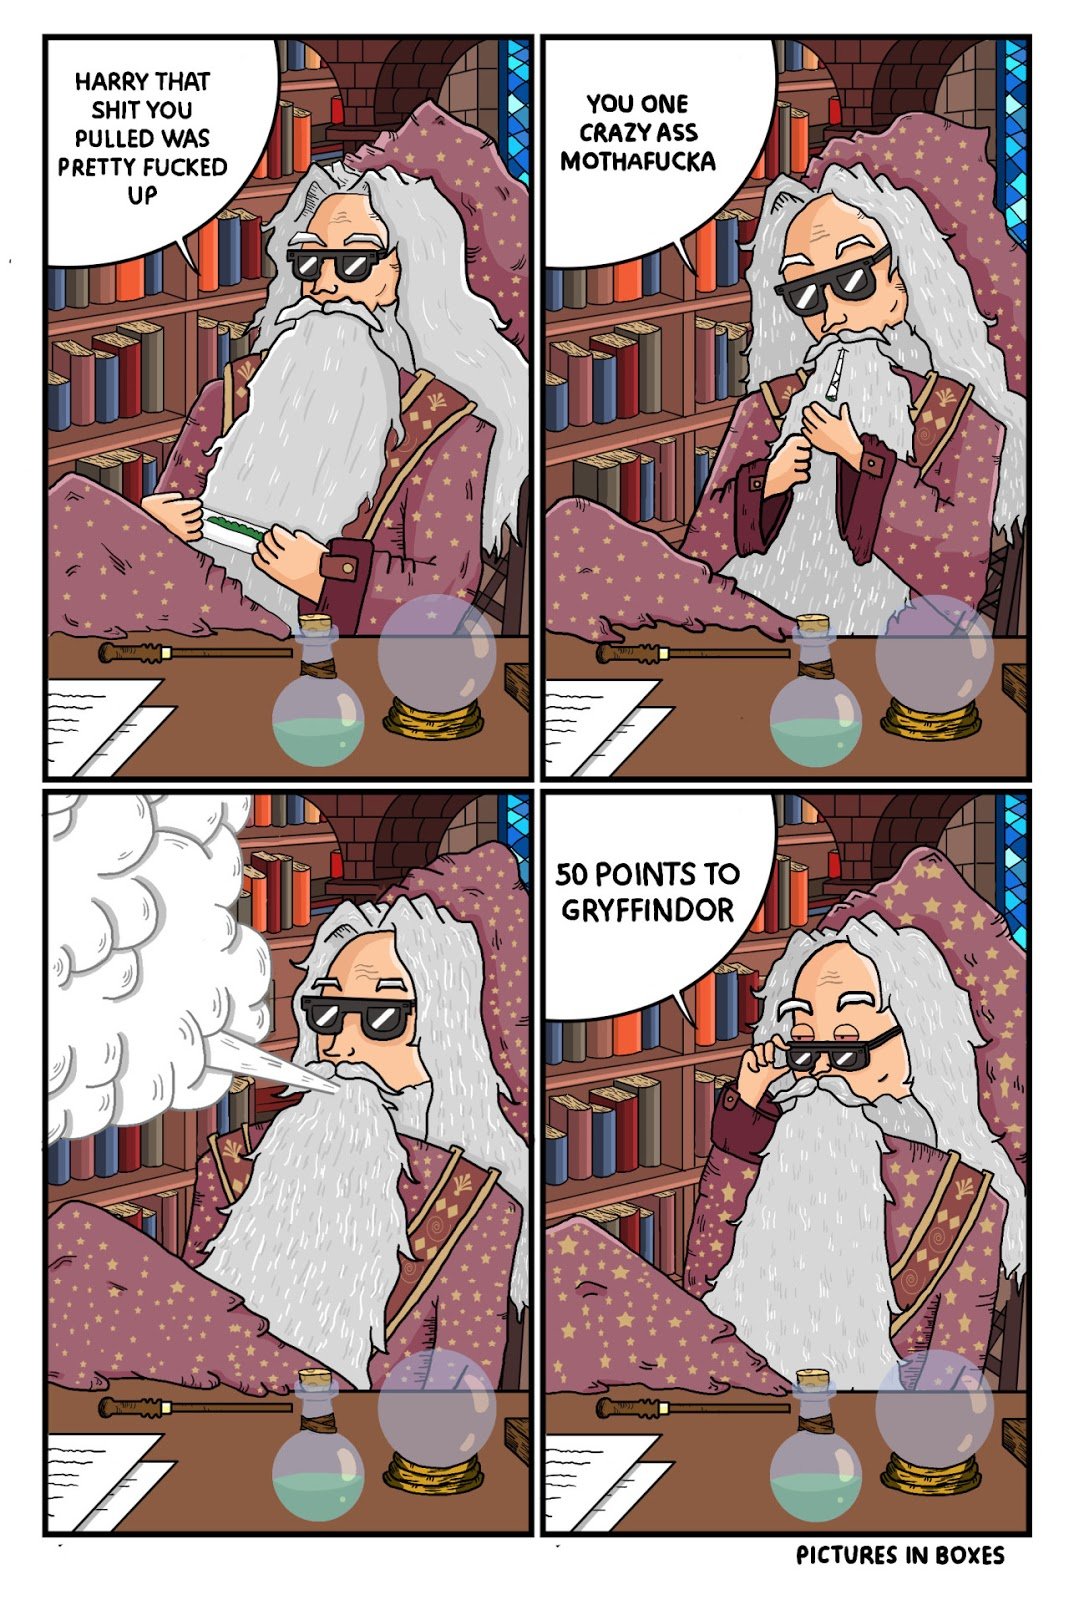 Dumbledore awards points to Gryffindor in this comic